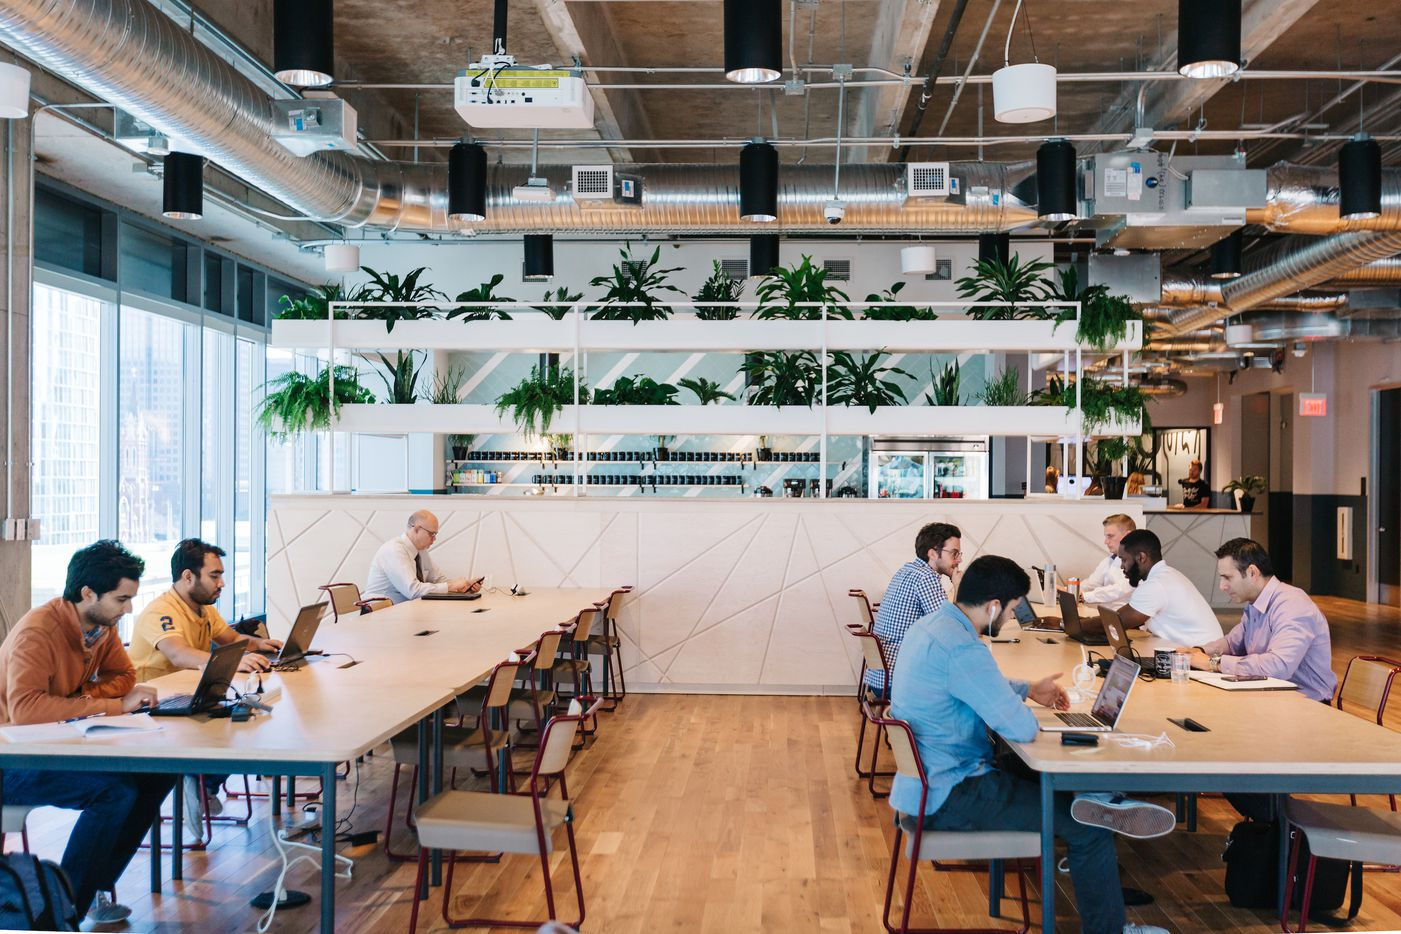 WeWork's McKinney Avenue location in Dallas' Uptown district has offices on two floors.